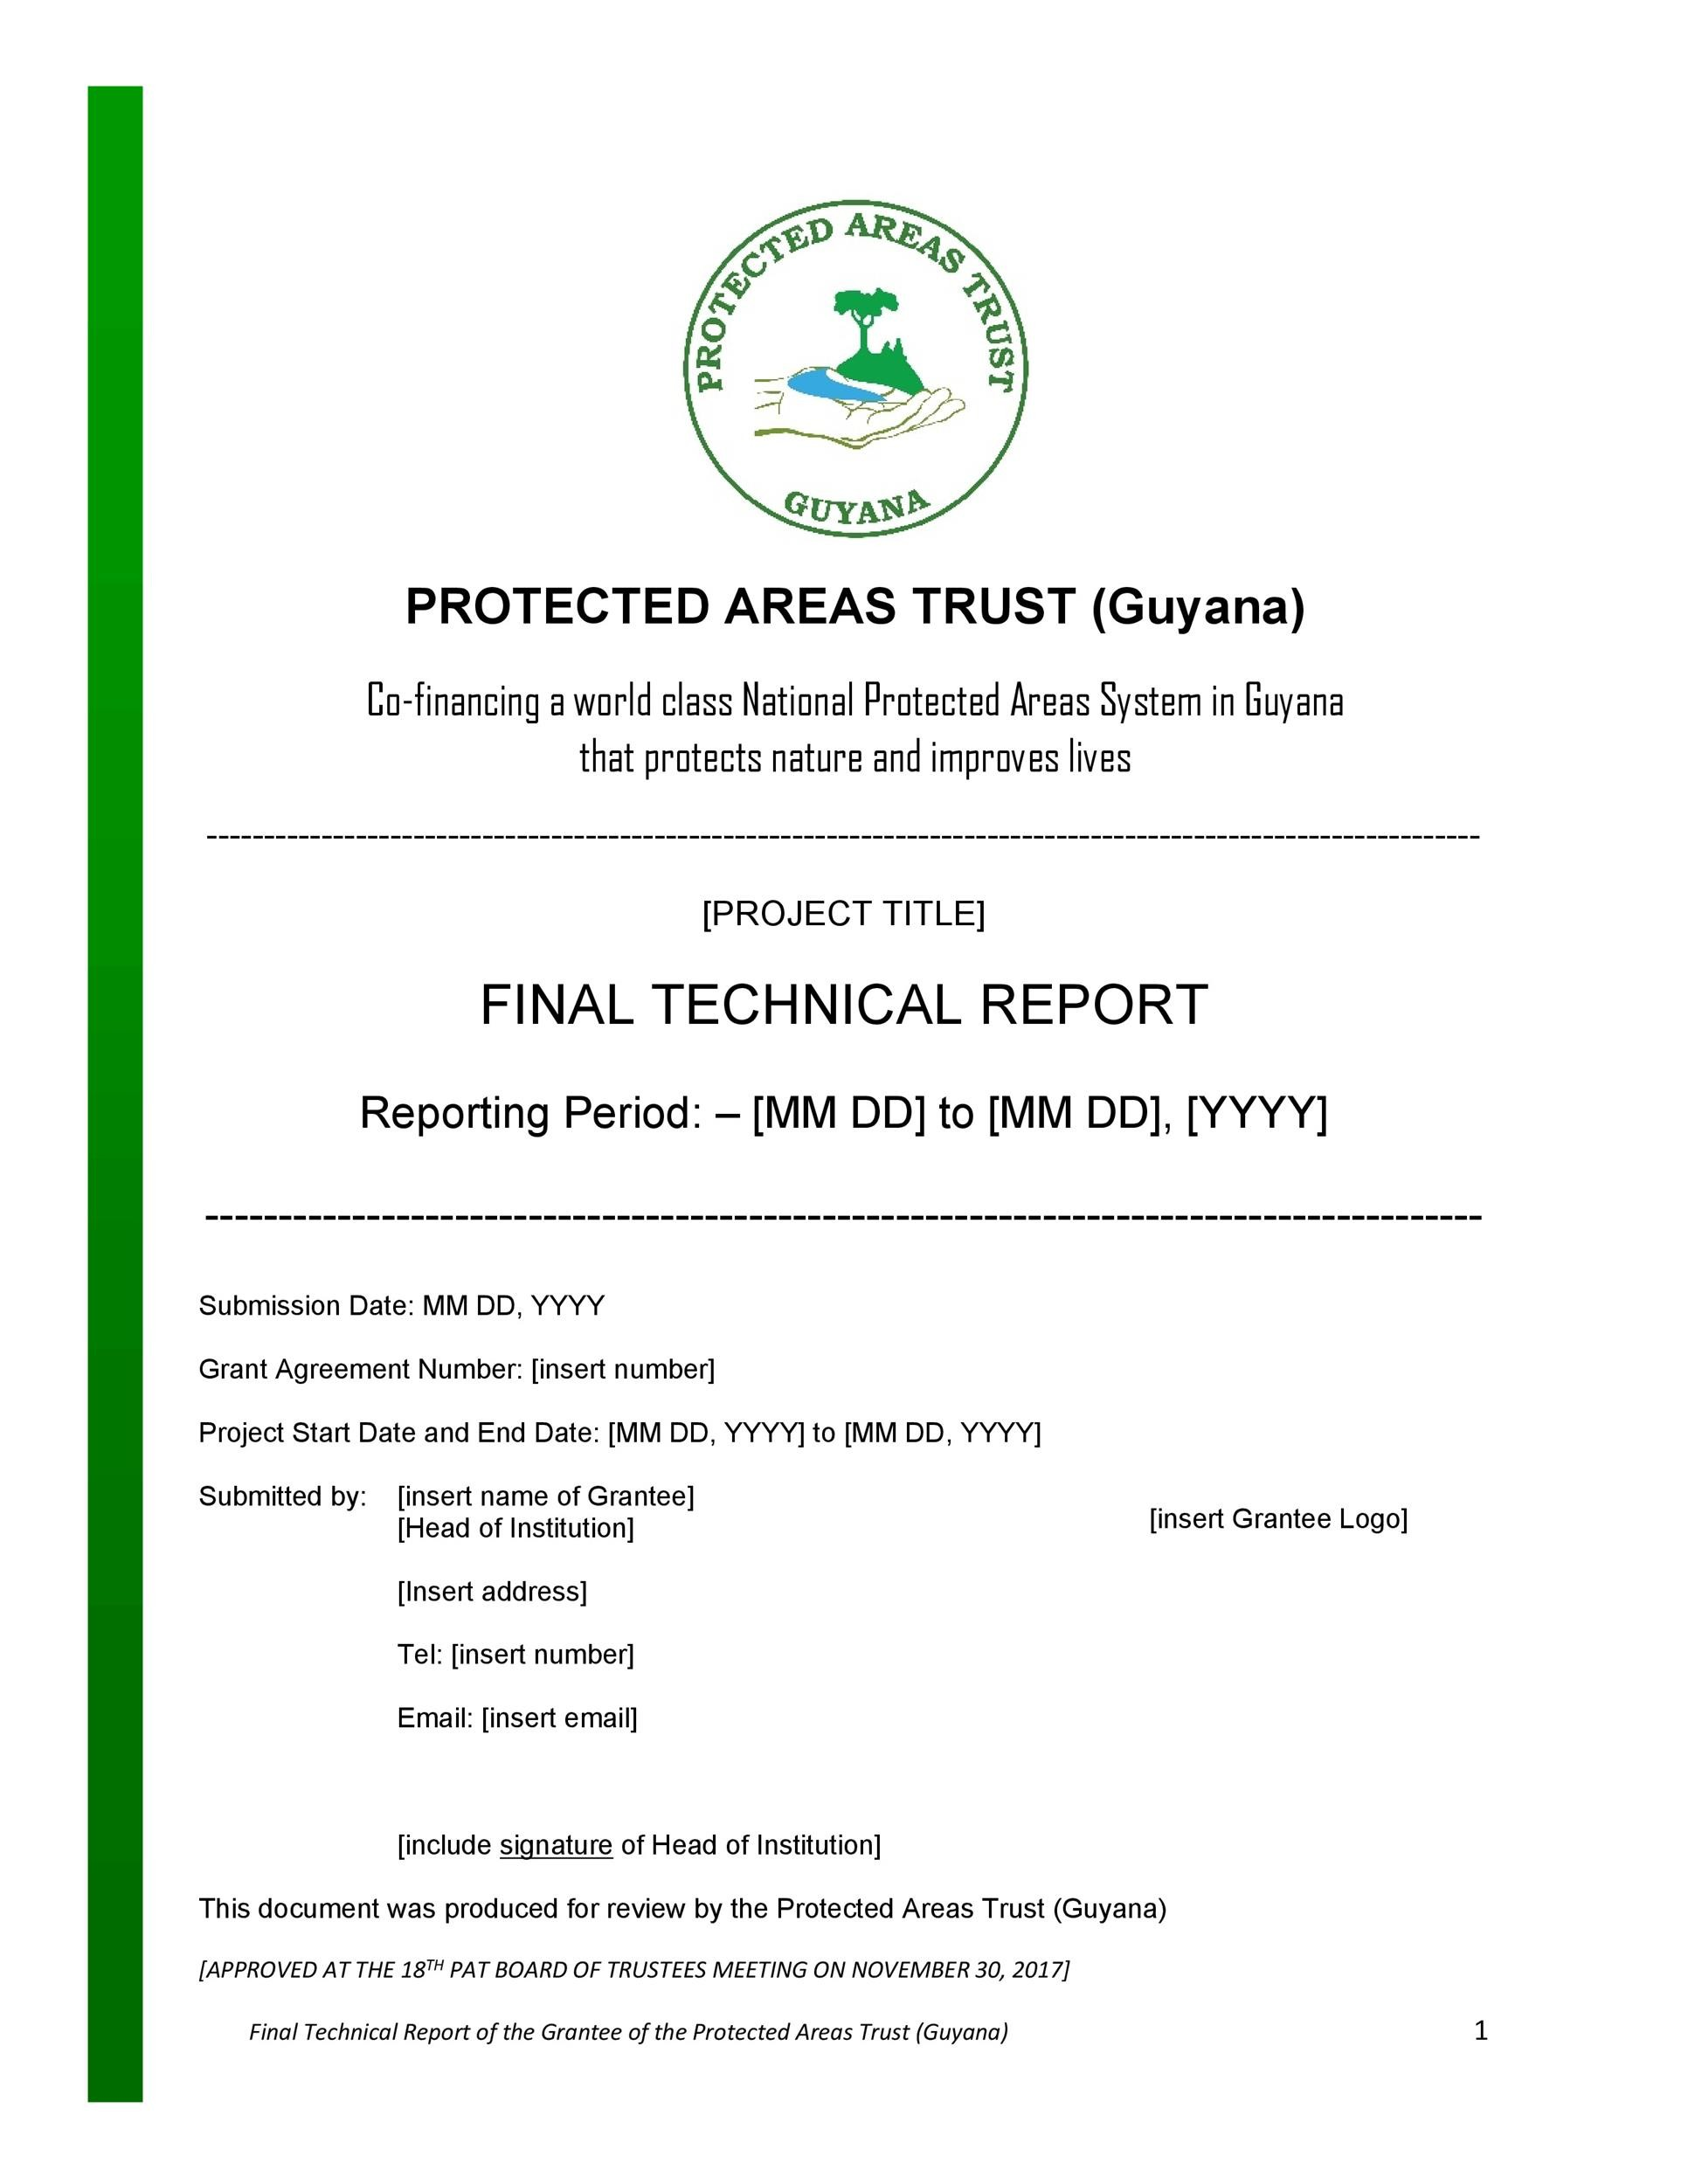 Free technical report template 07